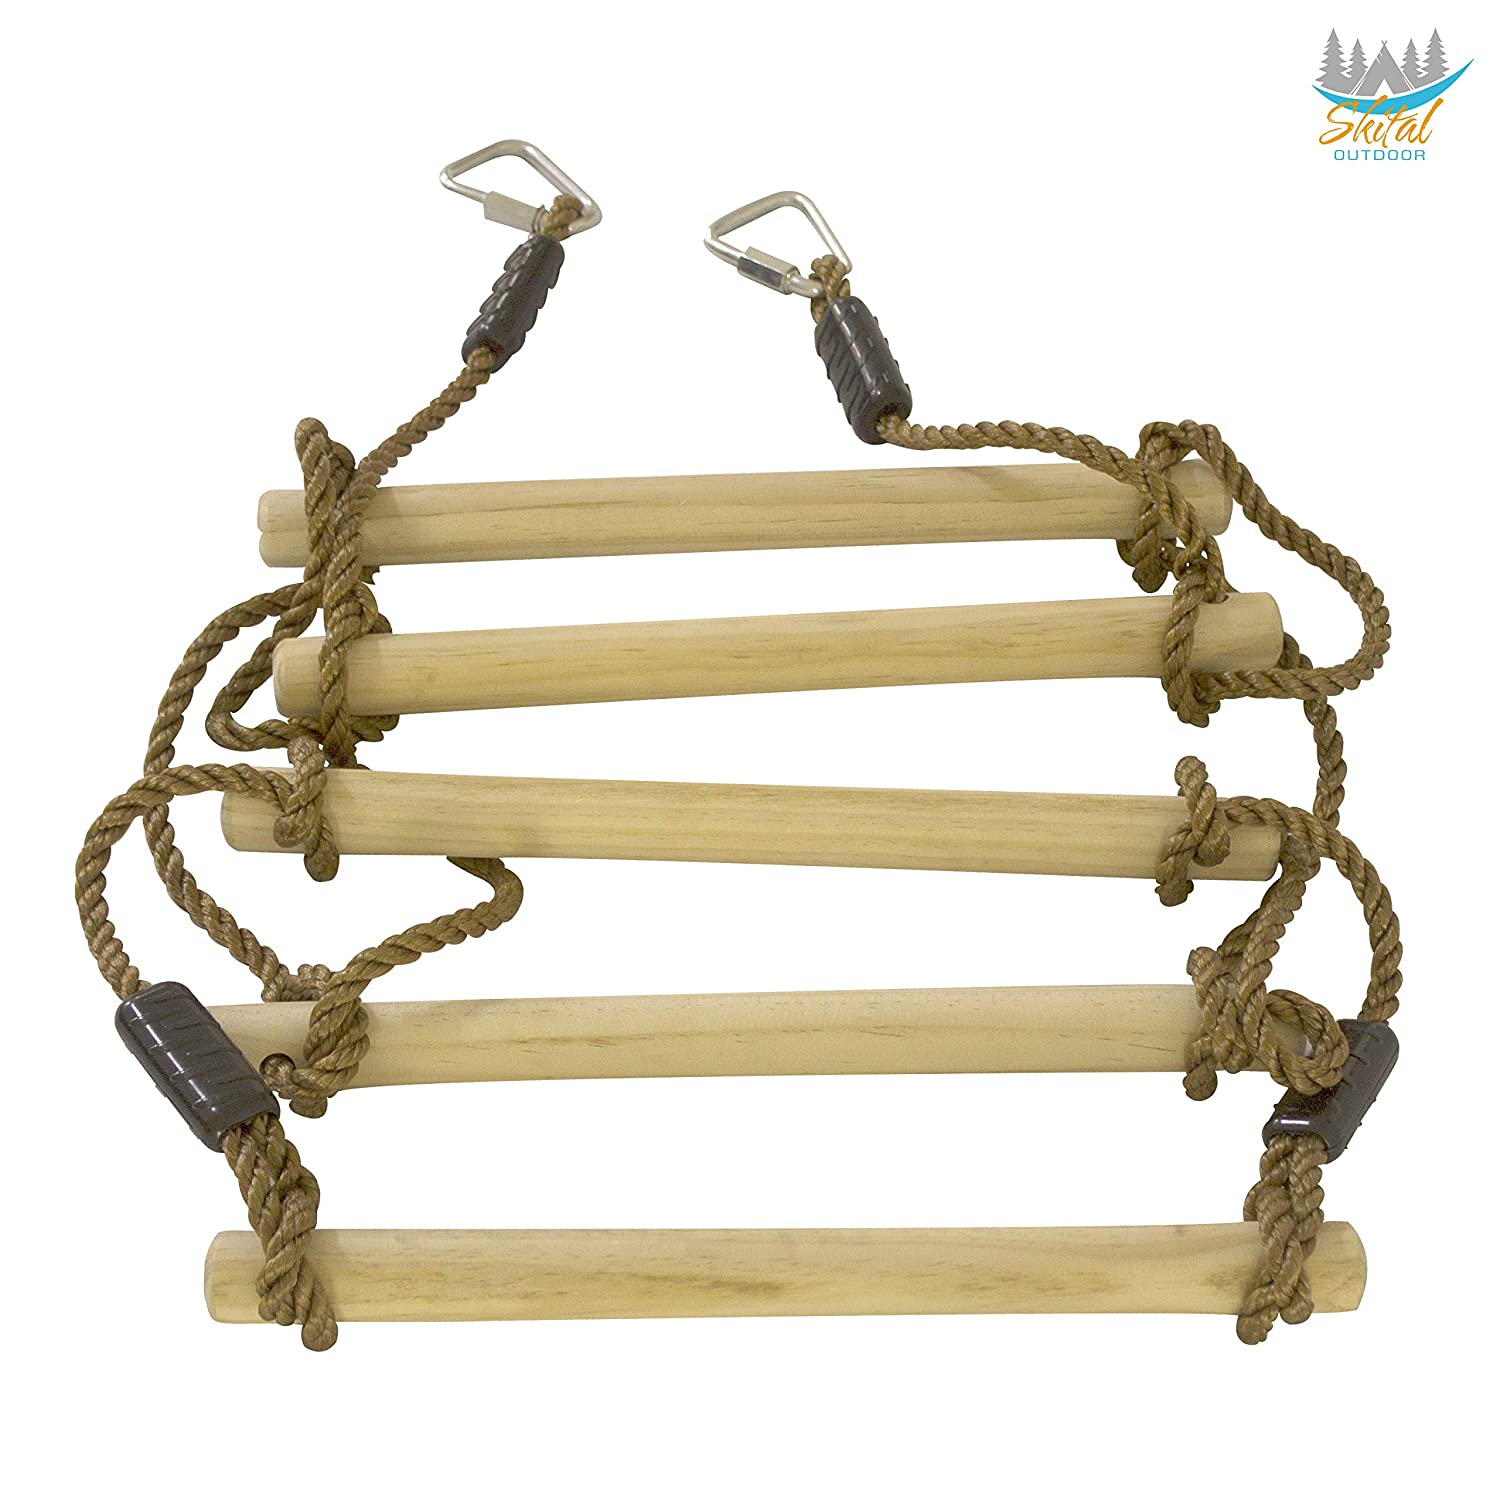 Skital Ladder Rope- Hanging Obstacle Extension for Ninjaline Kit- Obstacle Course for Kids- Fits All Ninja Kit Zipline Outdoor Games and Sports ...